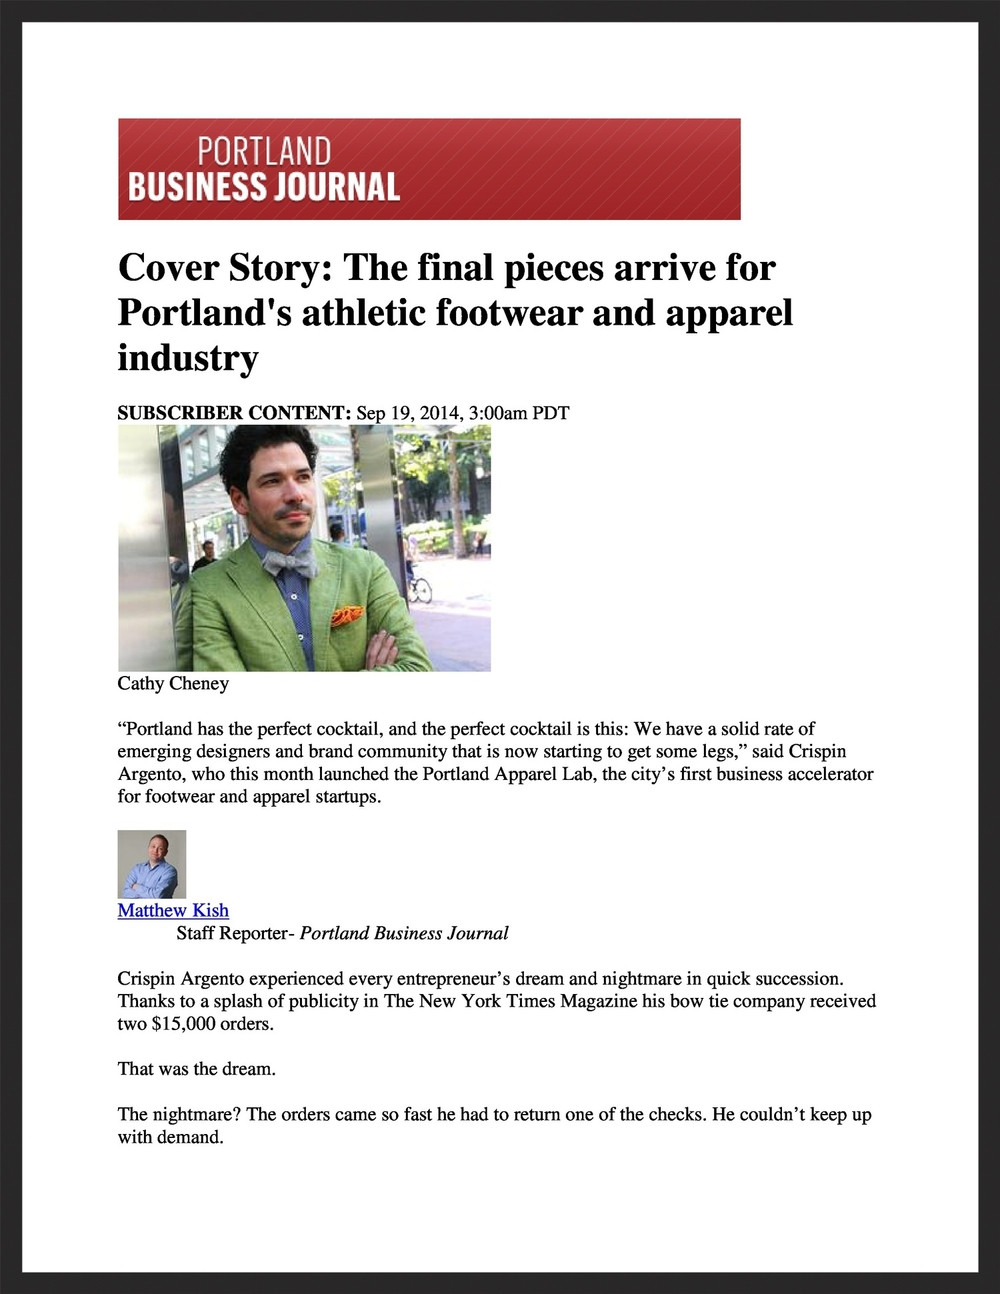 PORTLAND SEWING  Portland Business Journal  09.19.2014